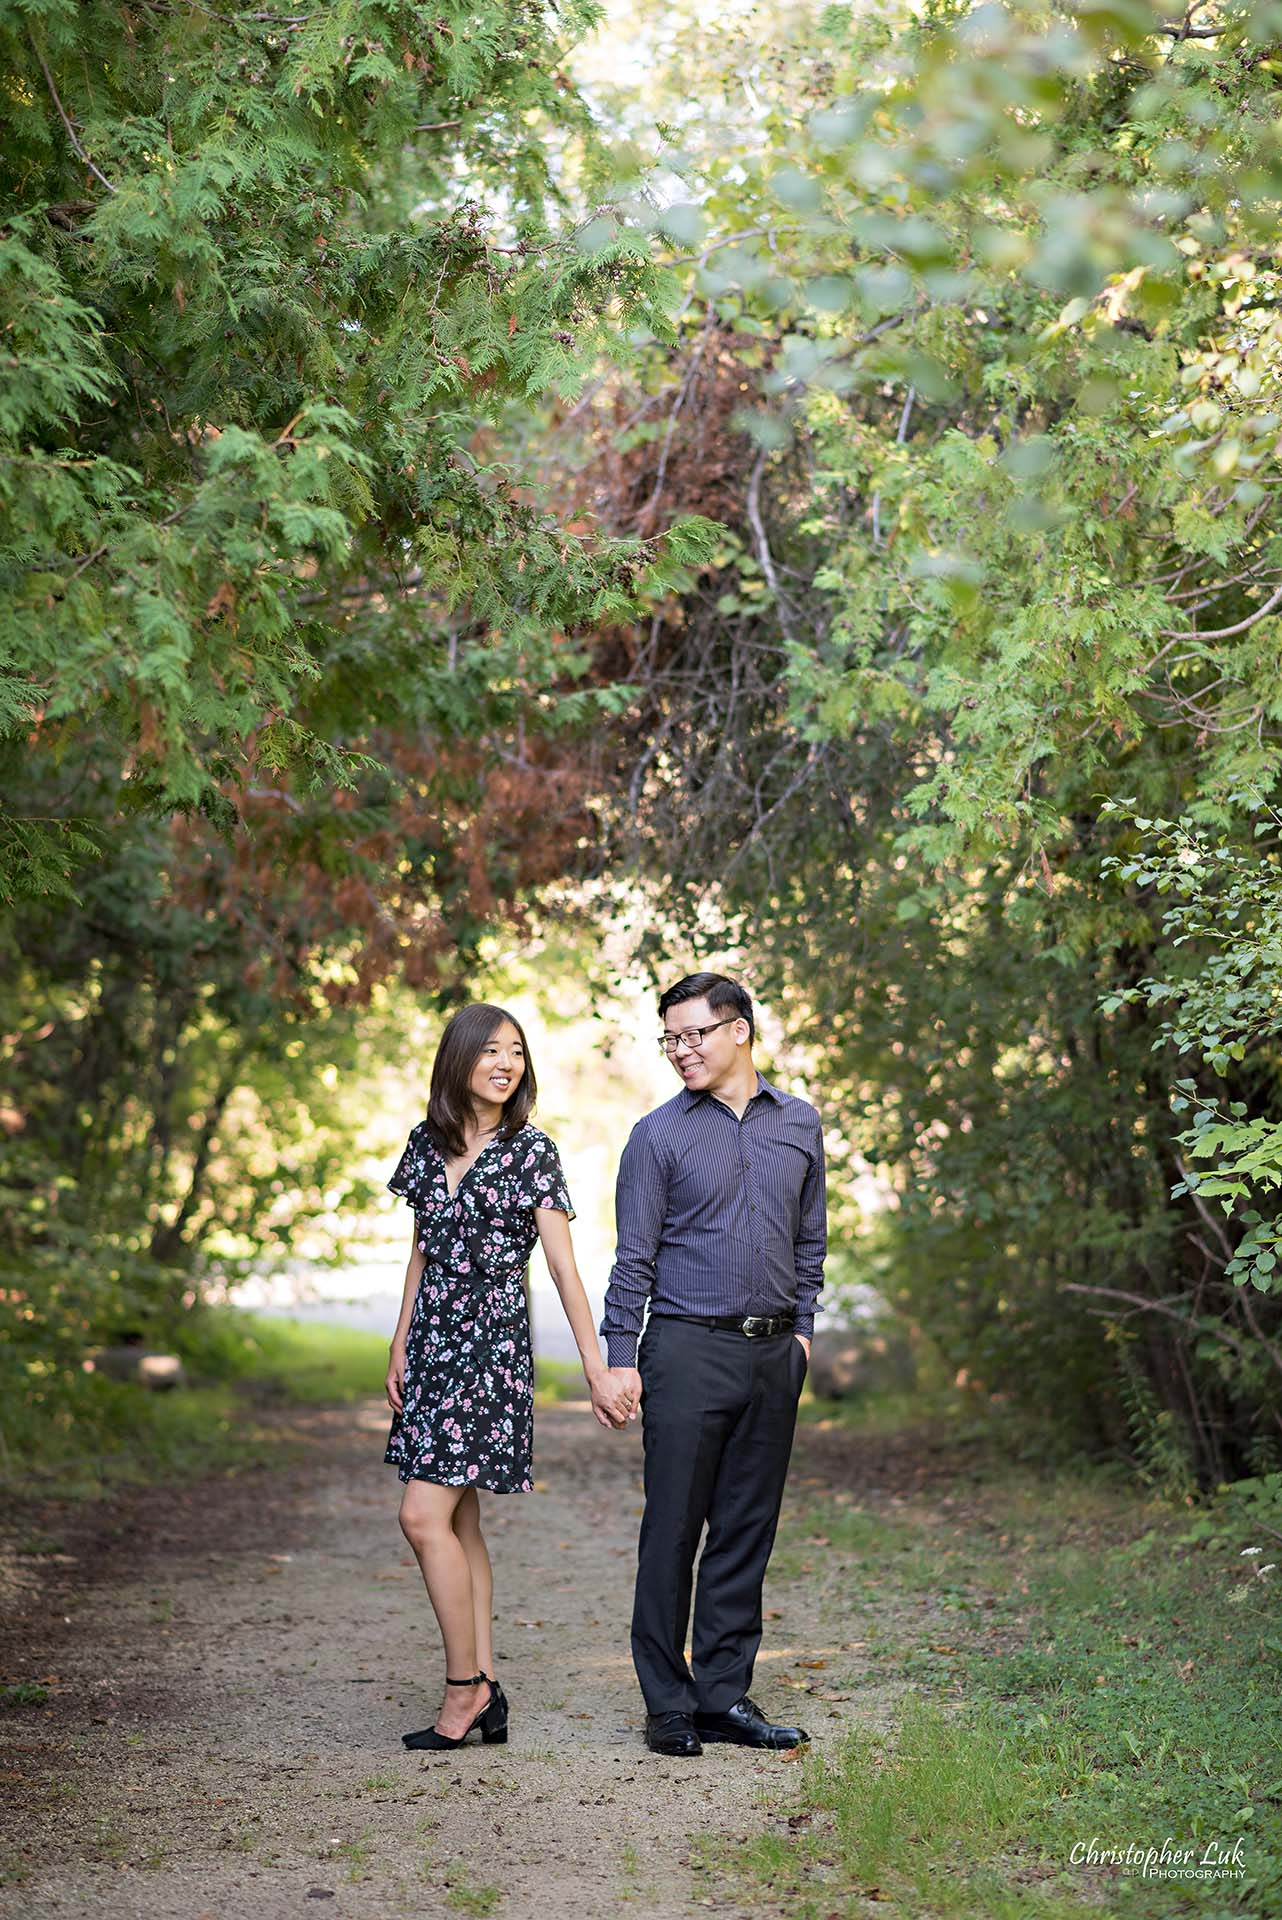 Christopher Luk Toronto Wedding Photographer - Richmond Hill Markham York Region Conservation Area Engagement PreWedding Chinese Korean - Natural Candid Photojournalistic Bride Groom Holding Hands Smile